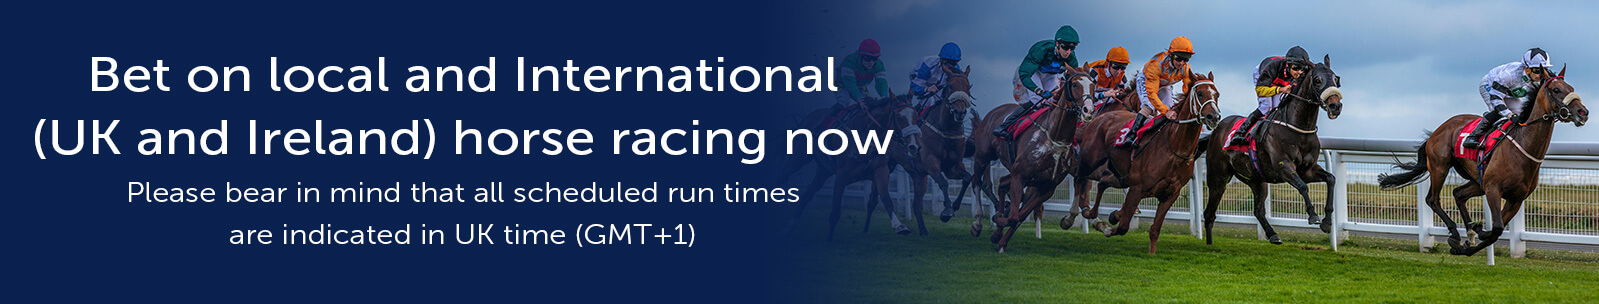 Bet on local and International (UK and Ireland) horse racing now!   Please bear in mind that all scheduled run times are indicated in UK time (GMT+1)